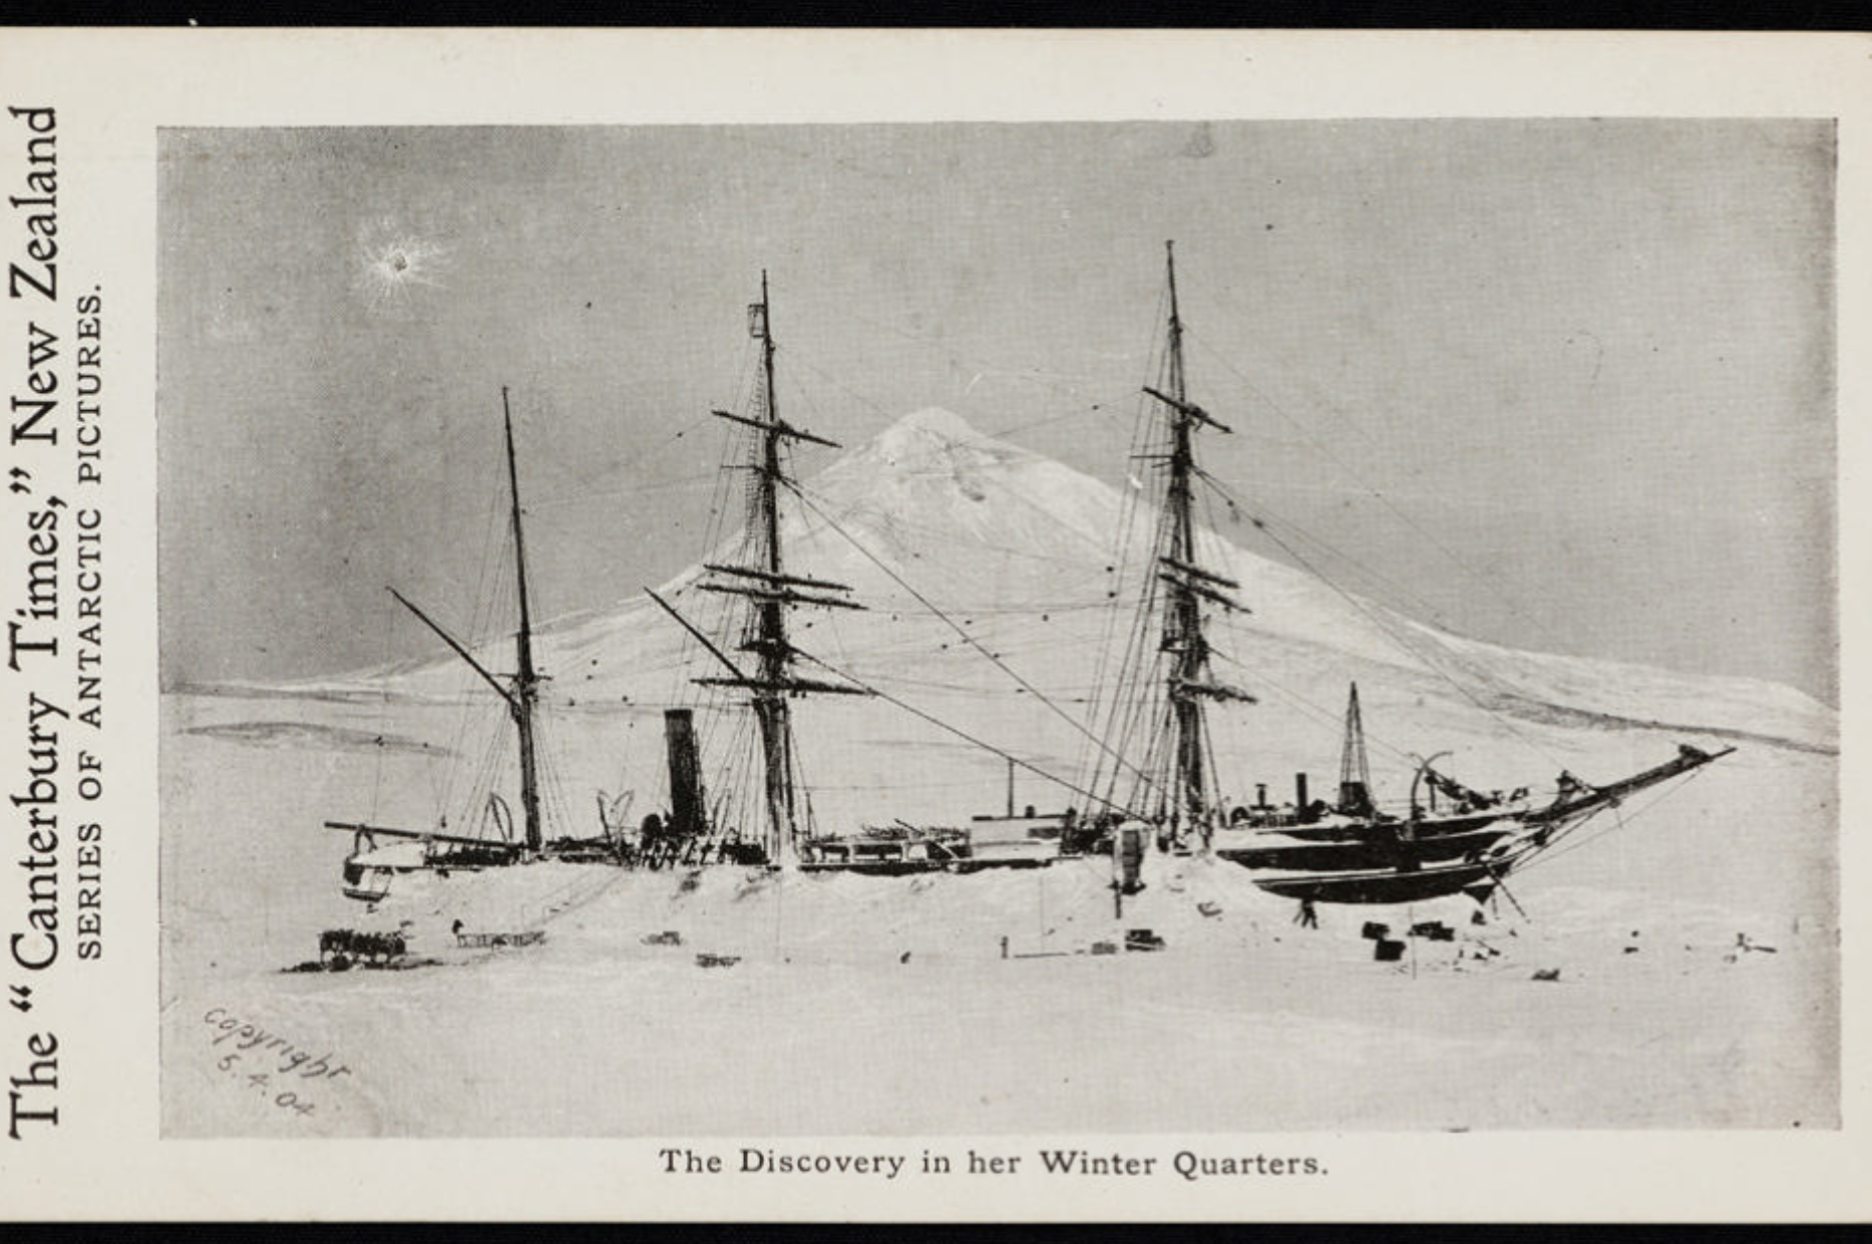 9877 1 The 'Discovery' in winter quarters, 5 April 1904